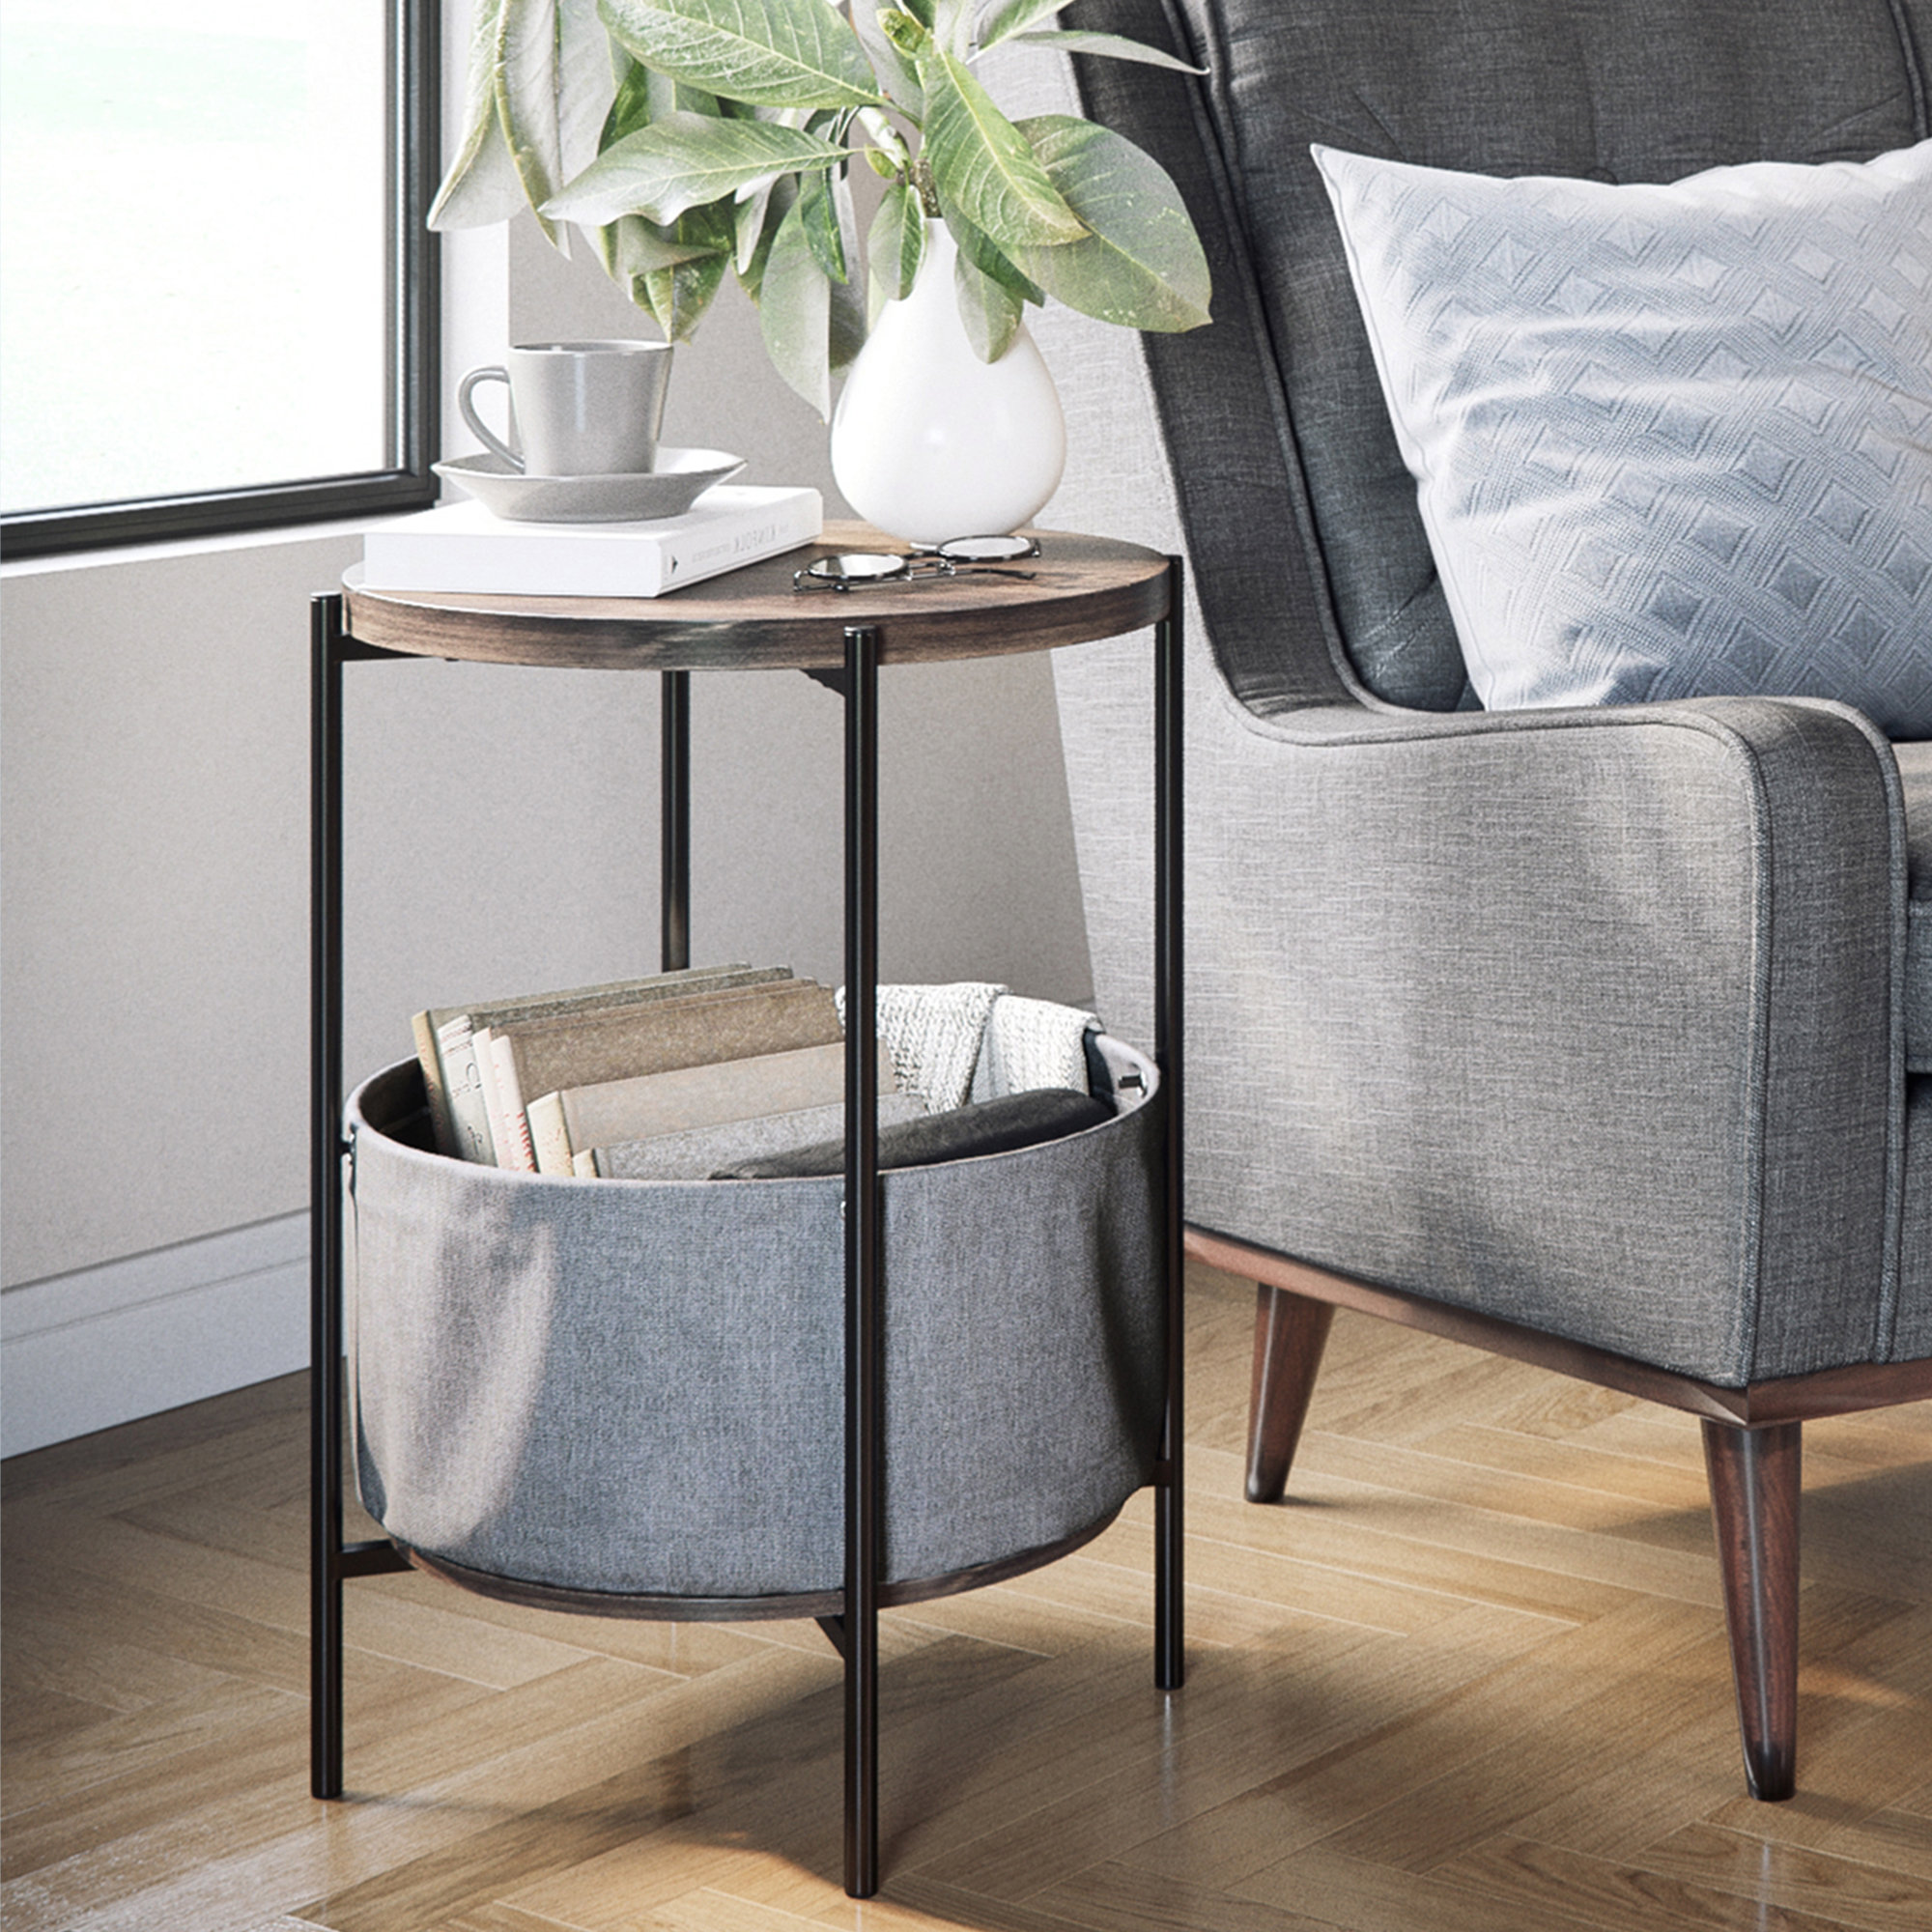 inch high end table bluxome with storage low height accent quickview make side black kitchen evans head modern wood and metal coffee antique drum the iron company distressed gray